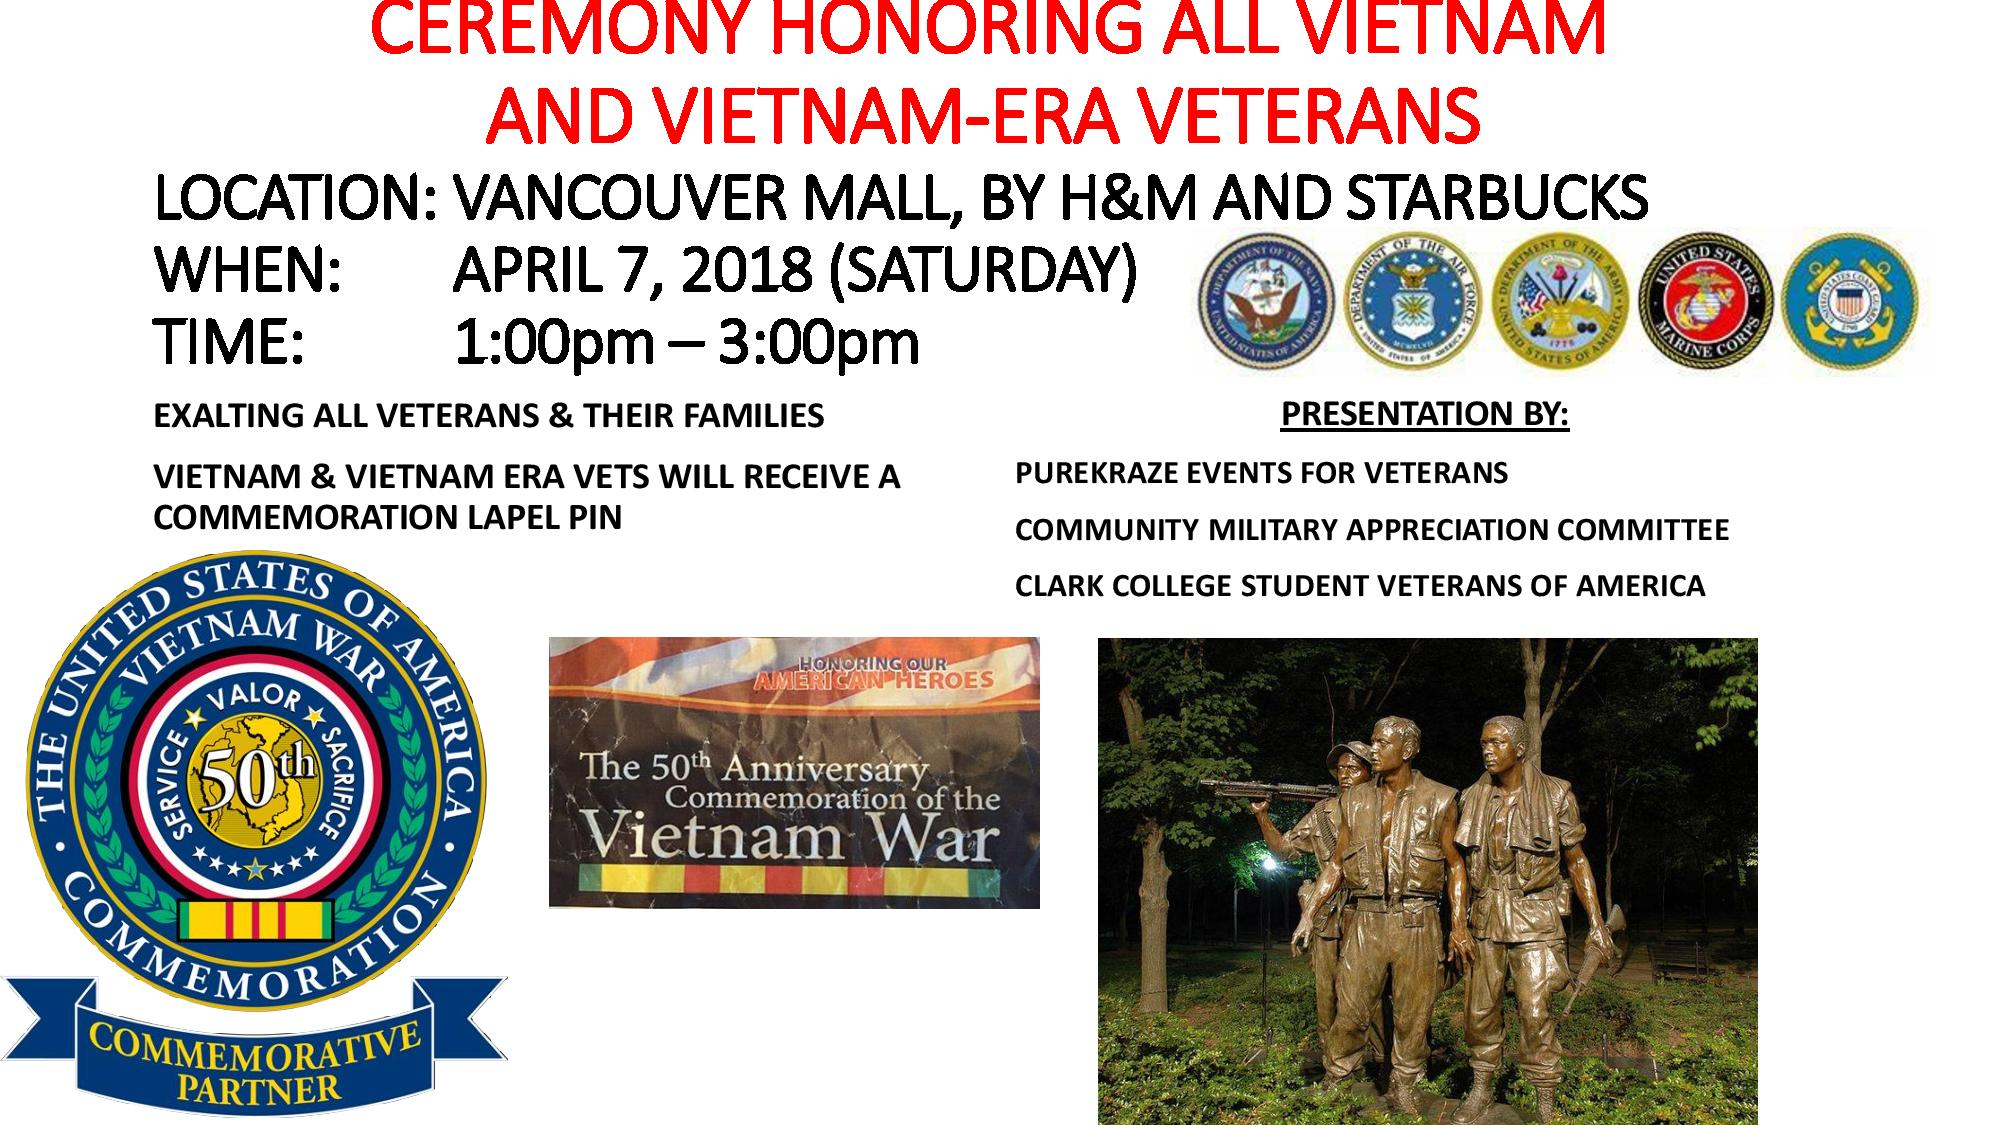 The 50th Anniversary of the Vietnam War Commemoration